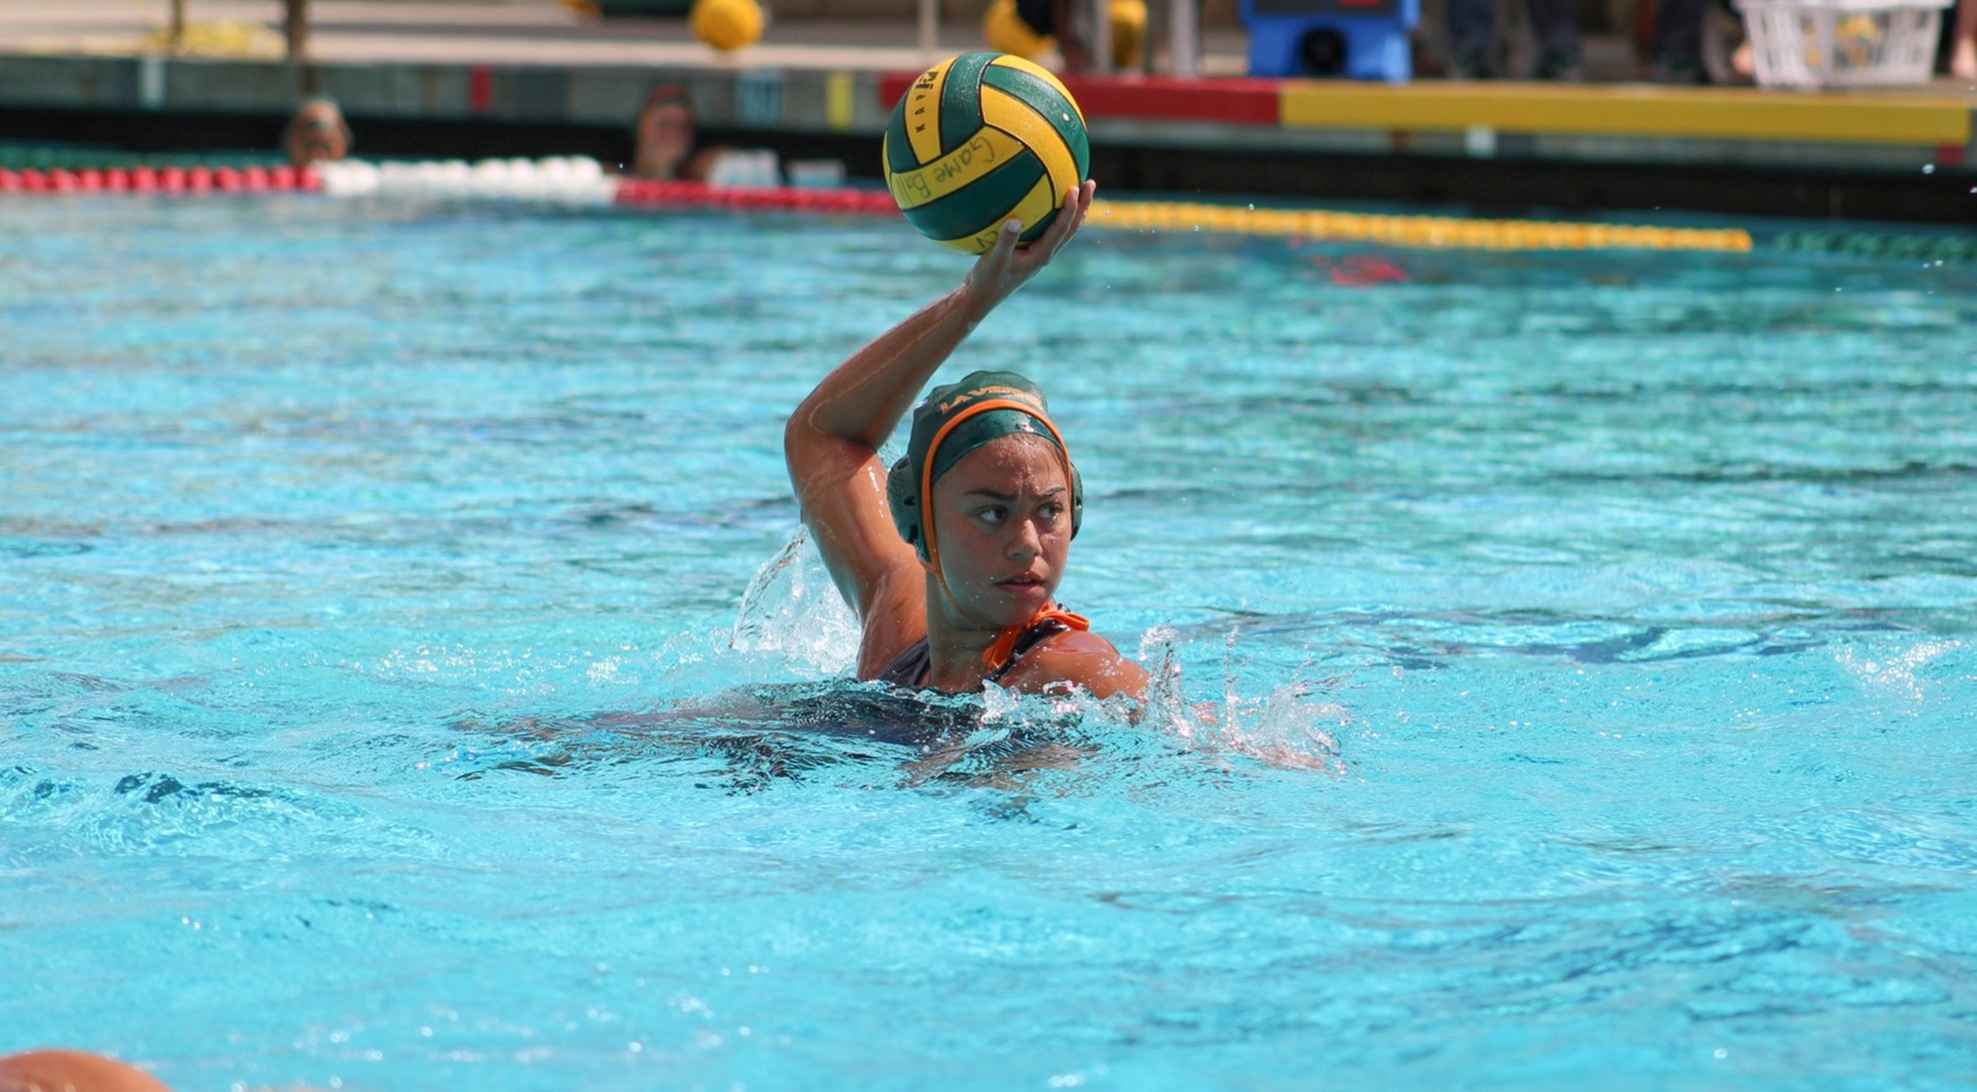 Women's Water Polo opens season at TIna Finali Invite